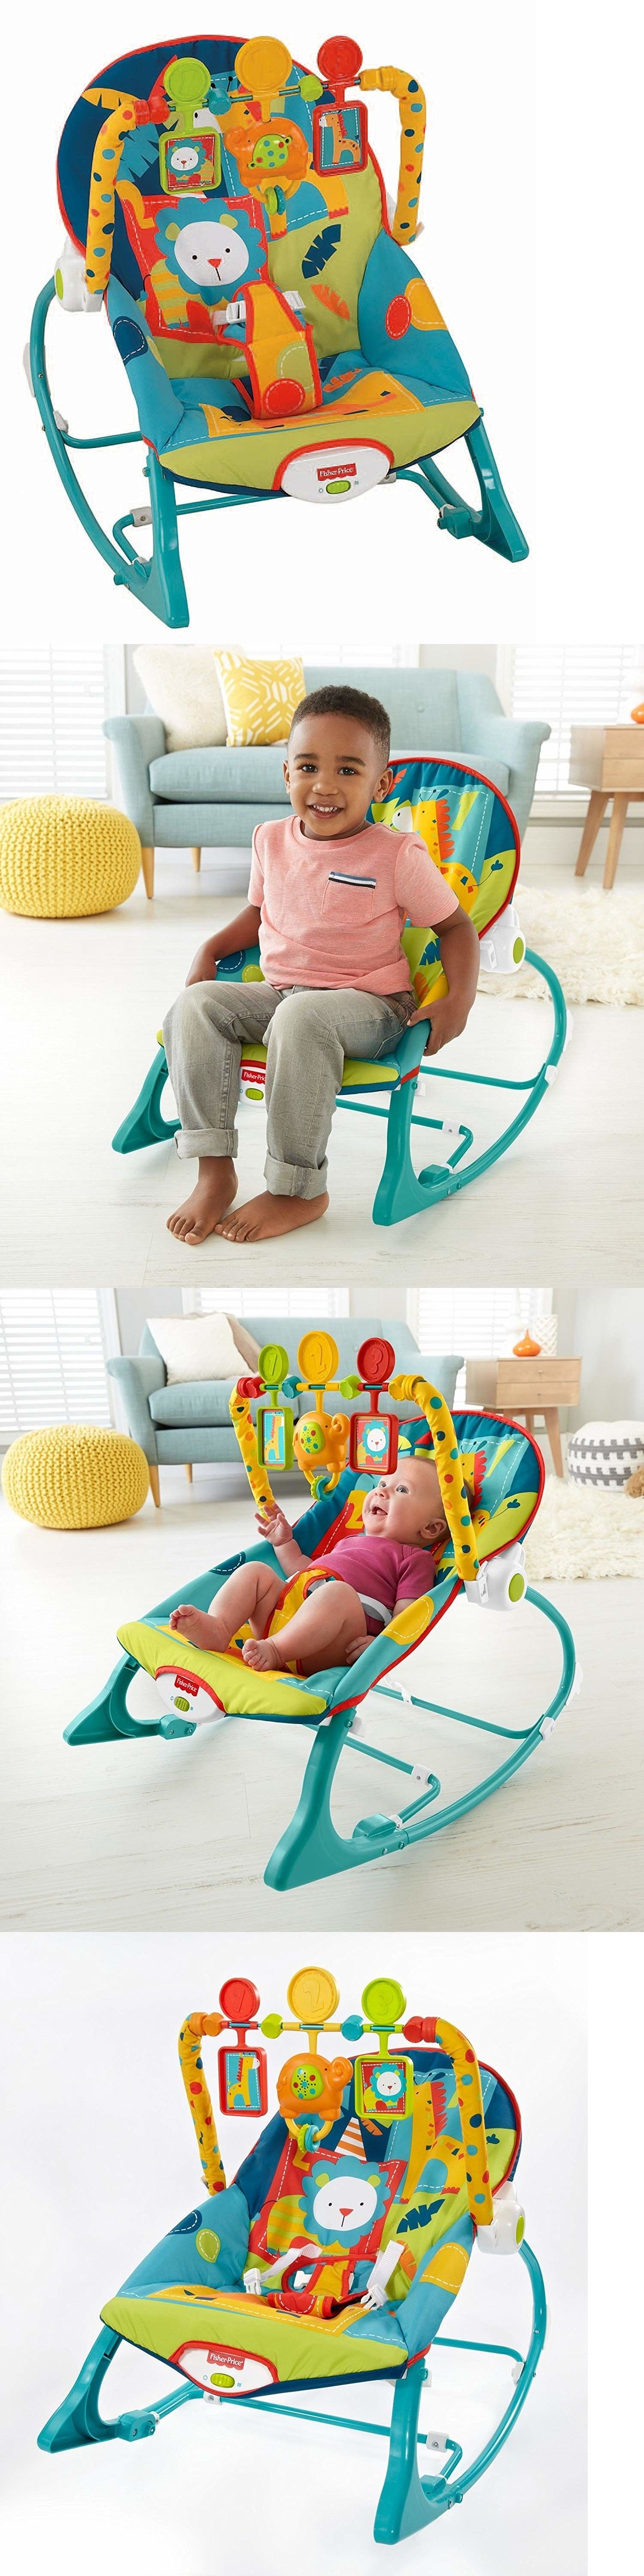 Bouncers And Vibrating Chairs 117034 Baby Bouncy Rocking Chair